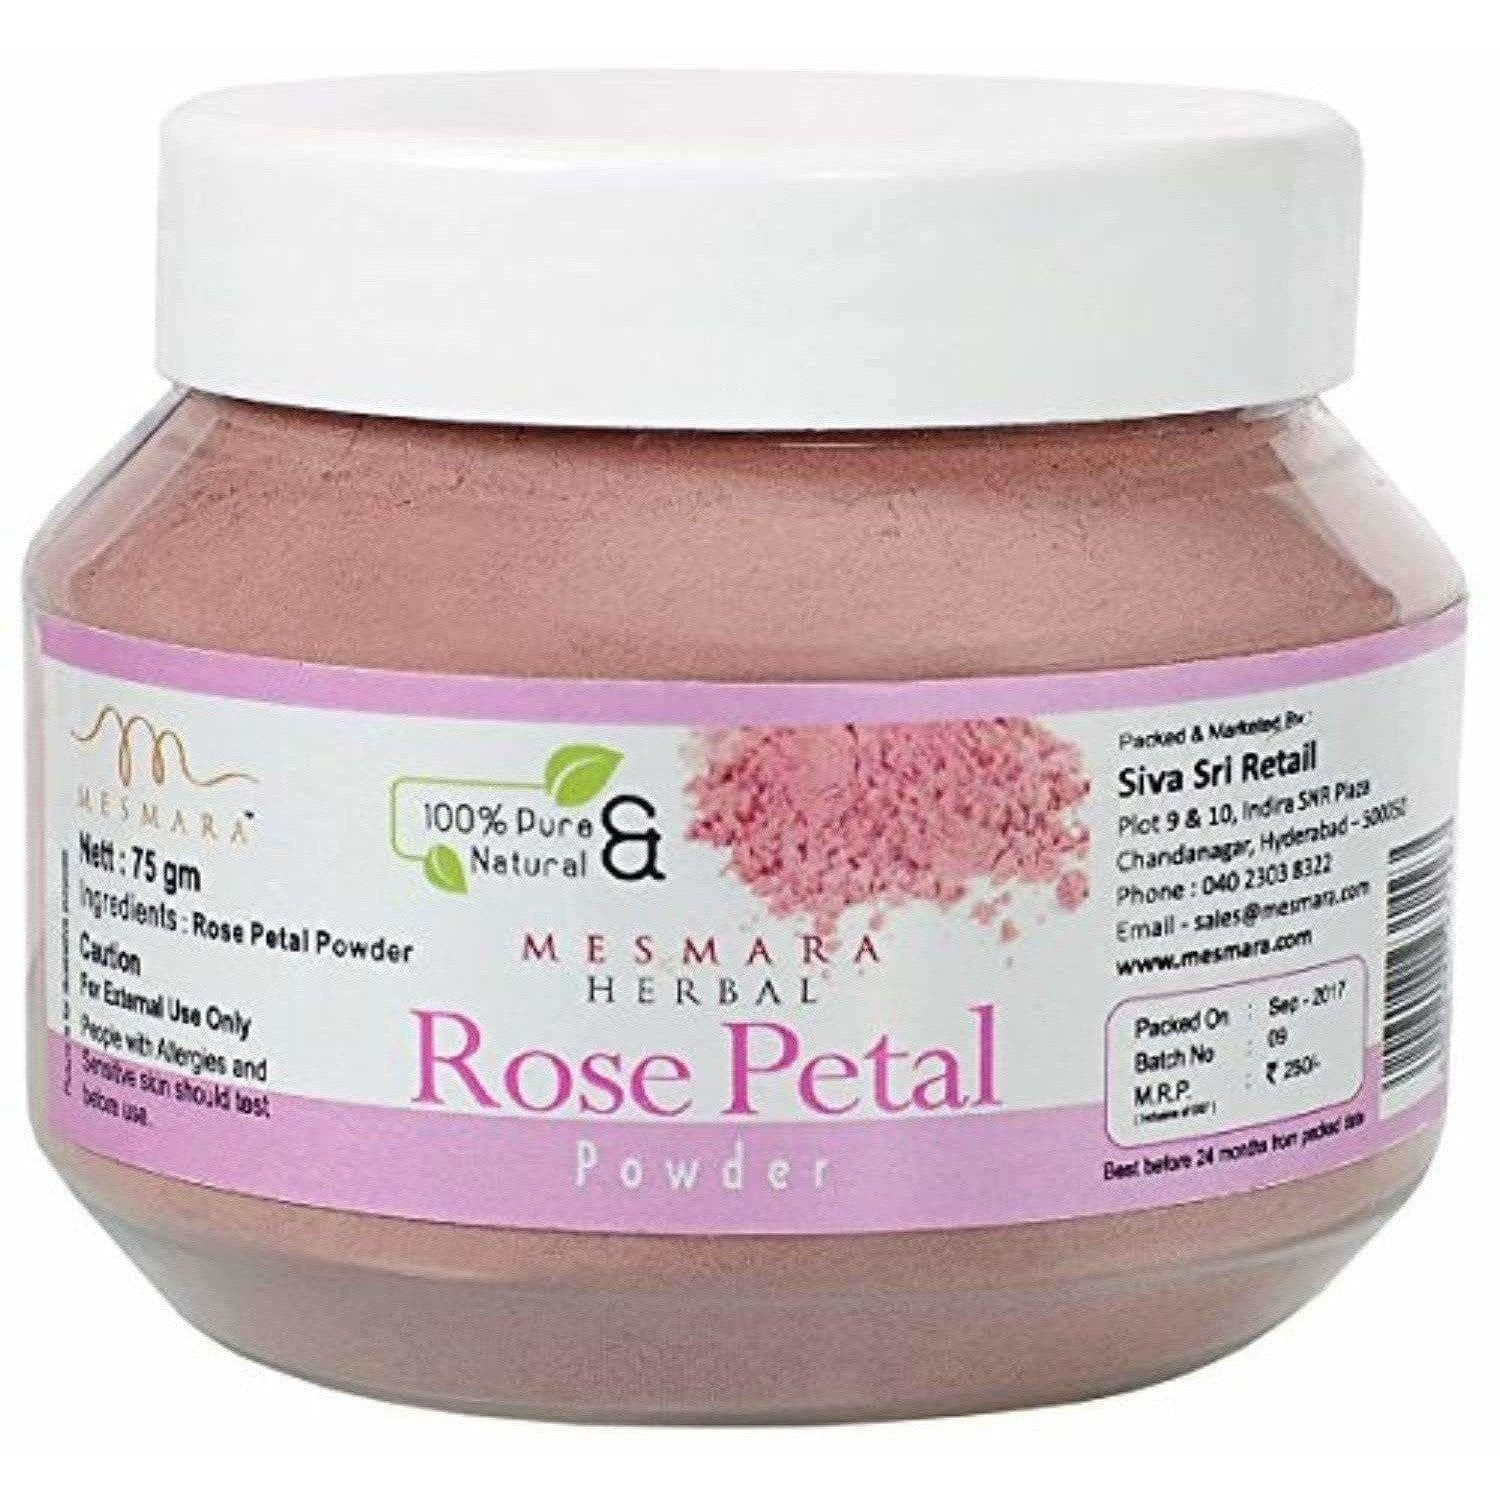 Mesmara Herbal Rose petal powder 75g